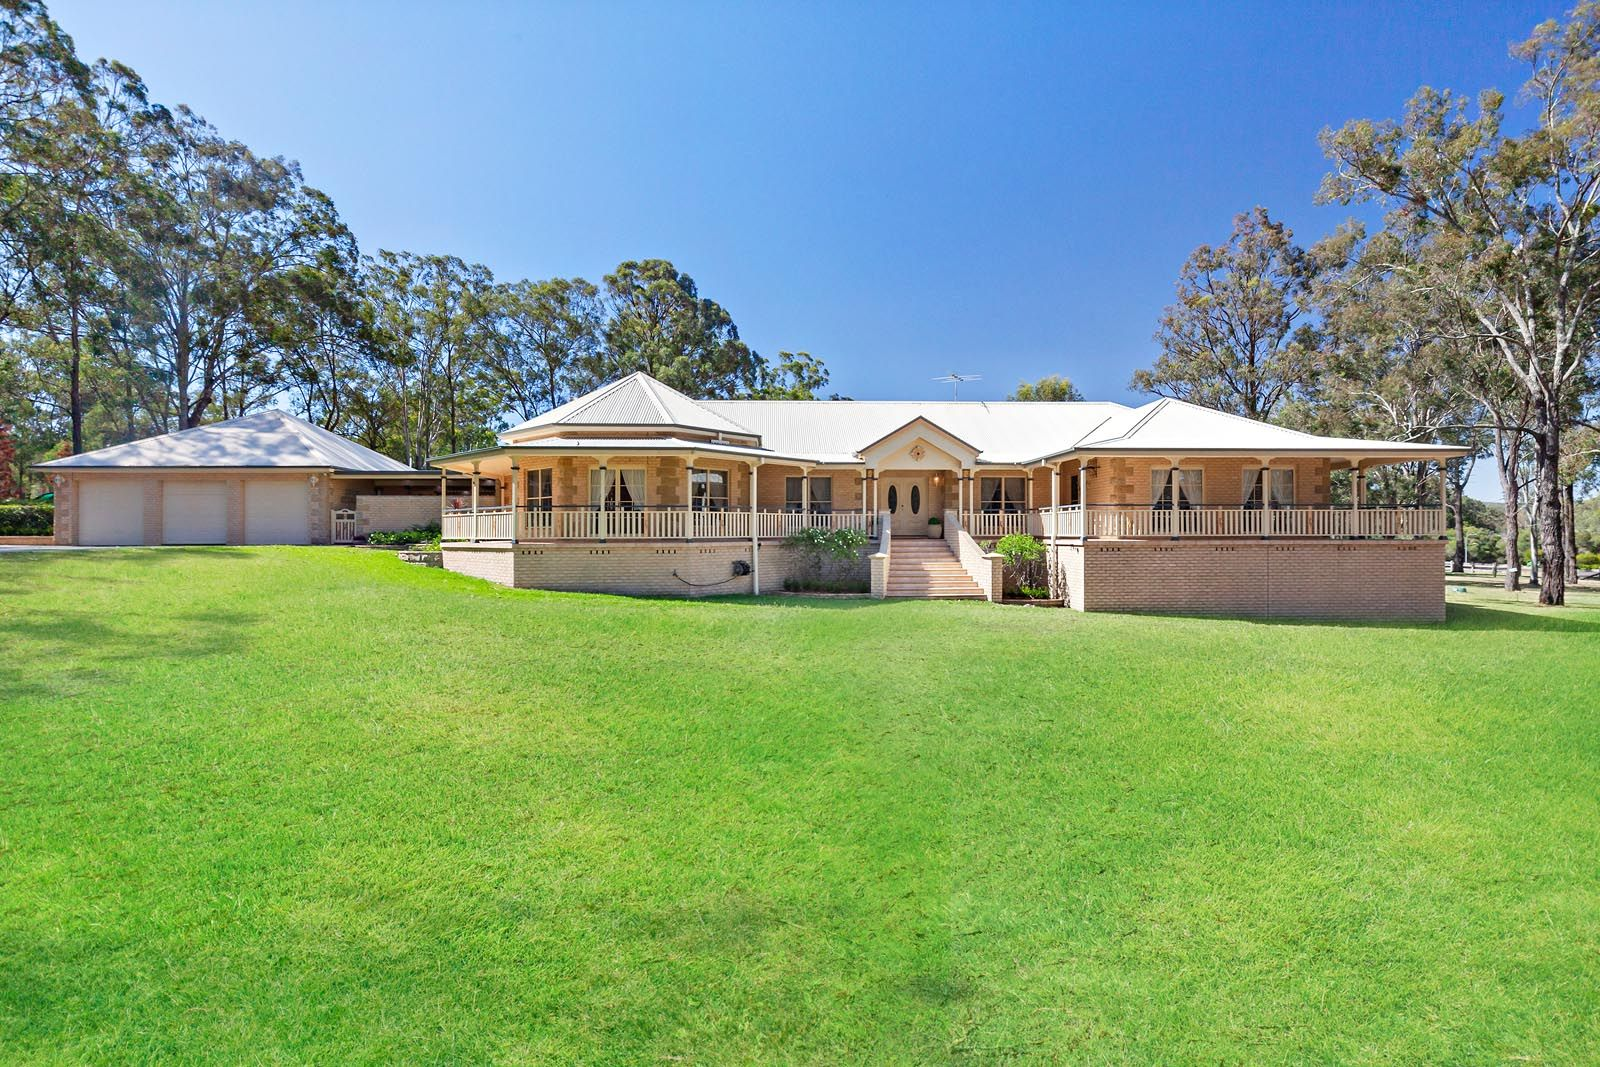 34 Rosebank Drive, Wallalong NSW 2320, Image 0